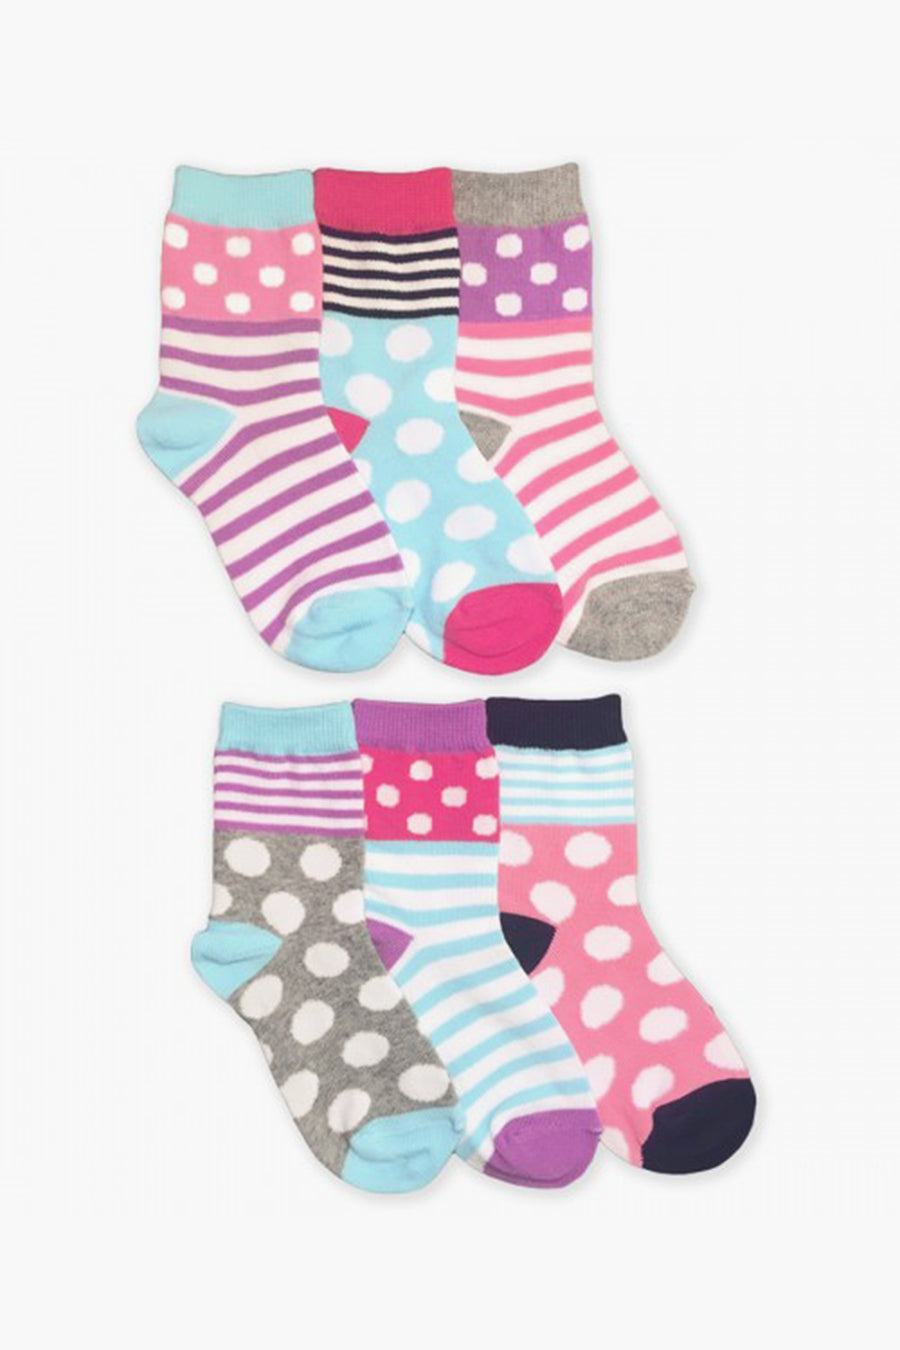 Jefferies Socks Multicolor Kids Socks 6-Pack